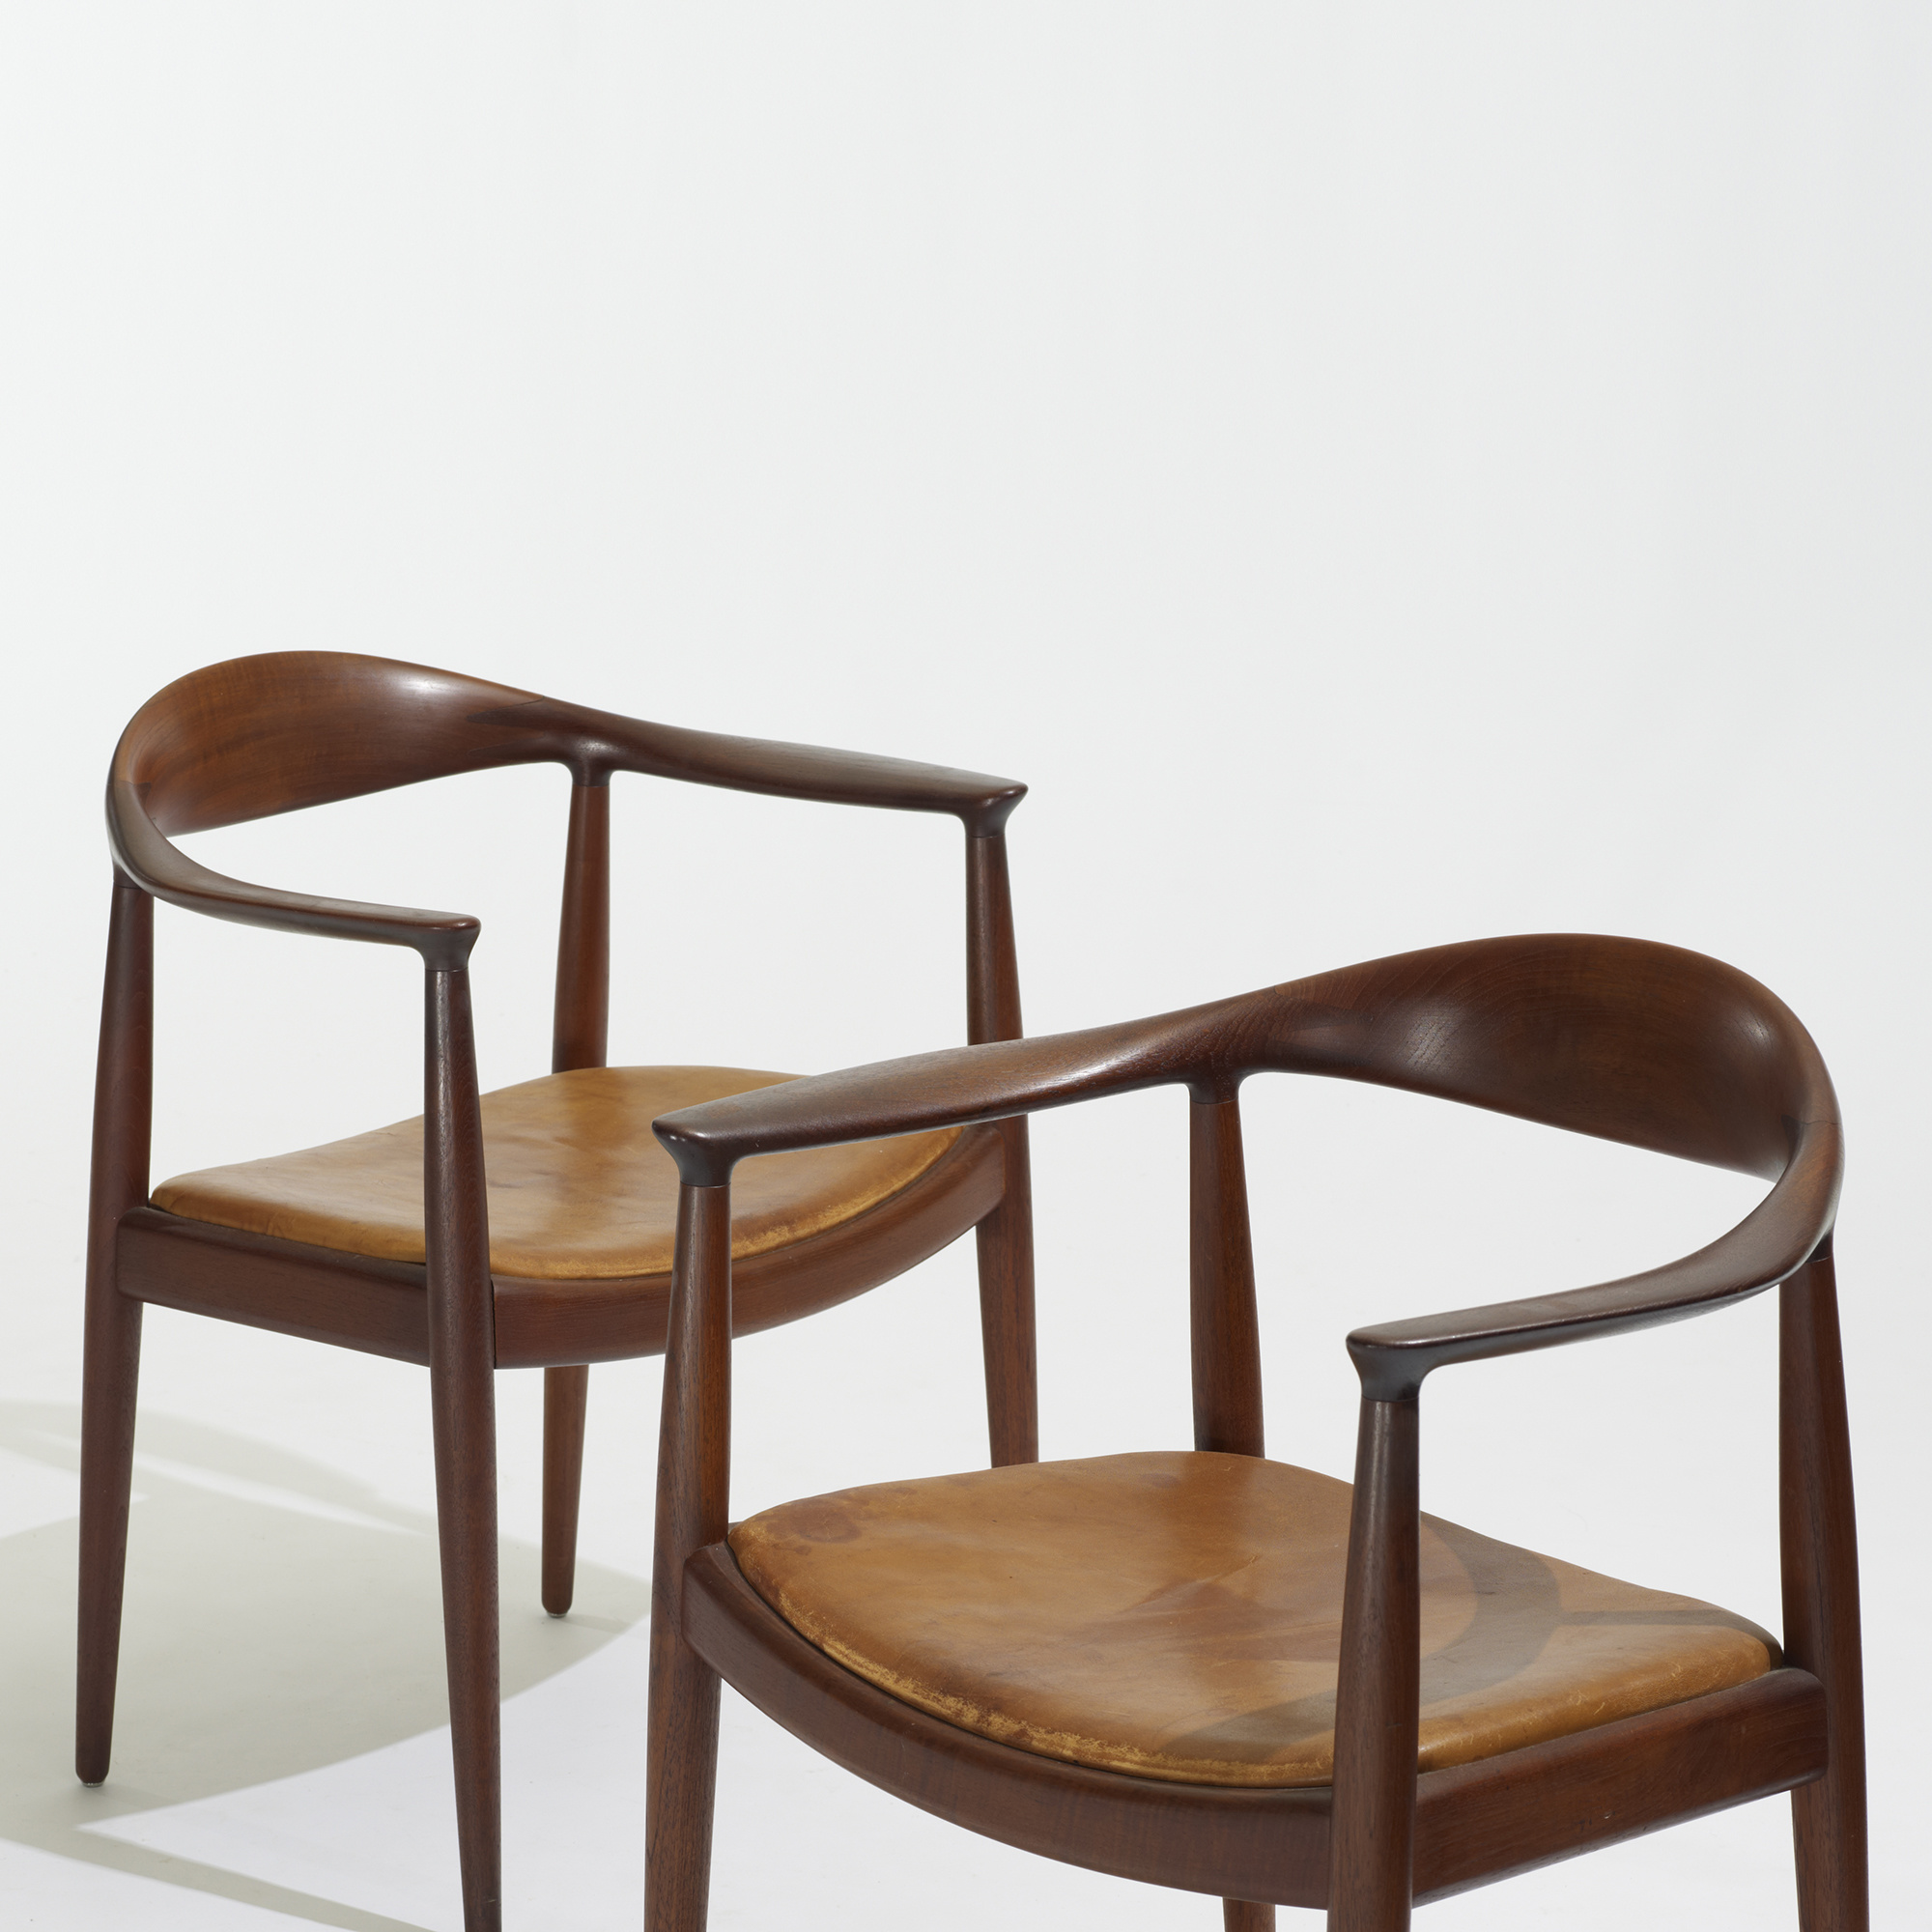 114 hans j wegner the chairs pair. Black Bedroom Furniture Sets. Home Design Ideas